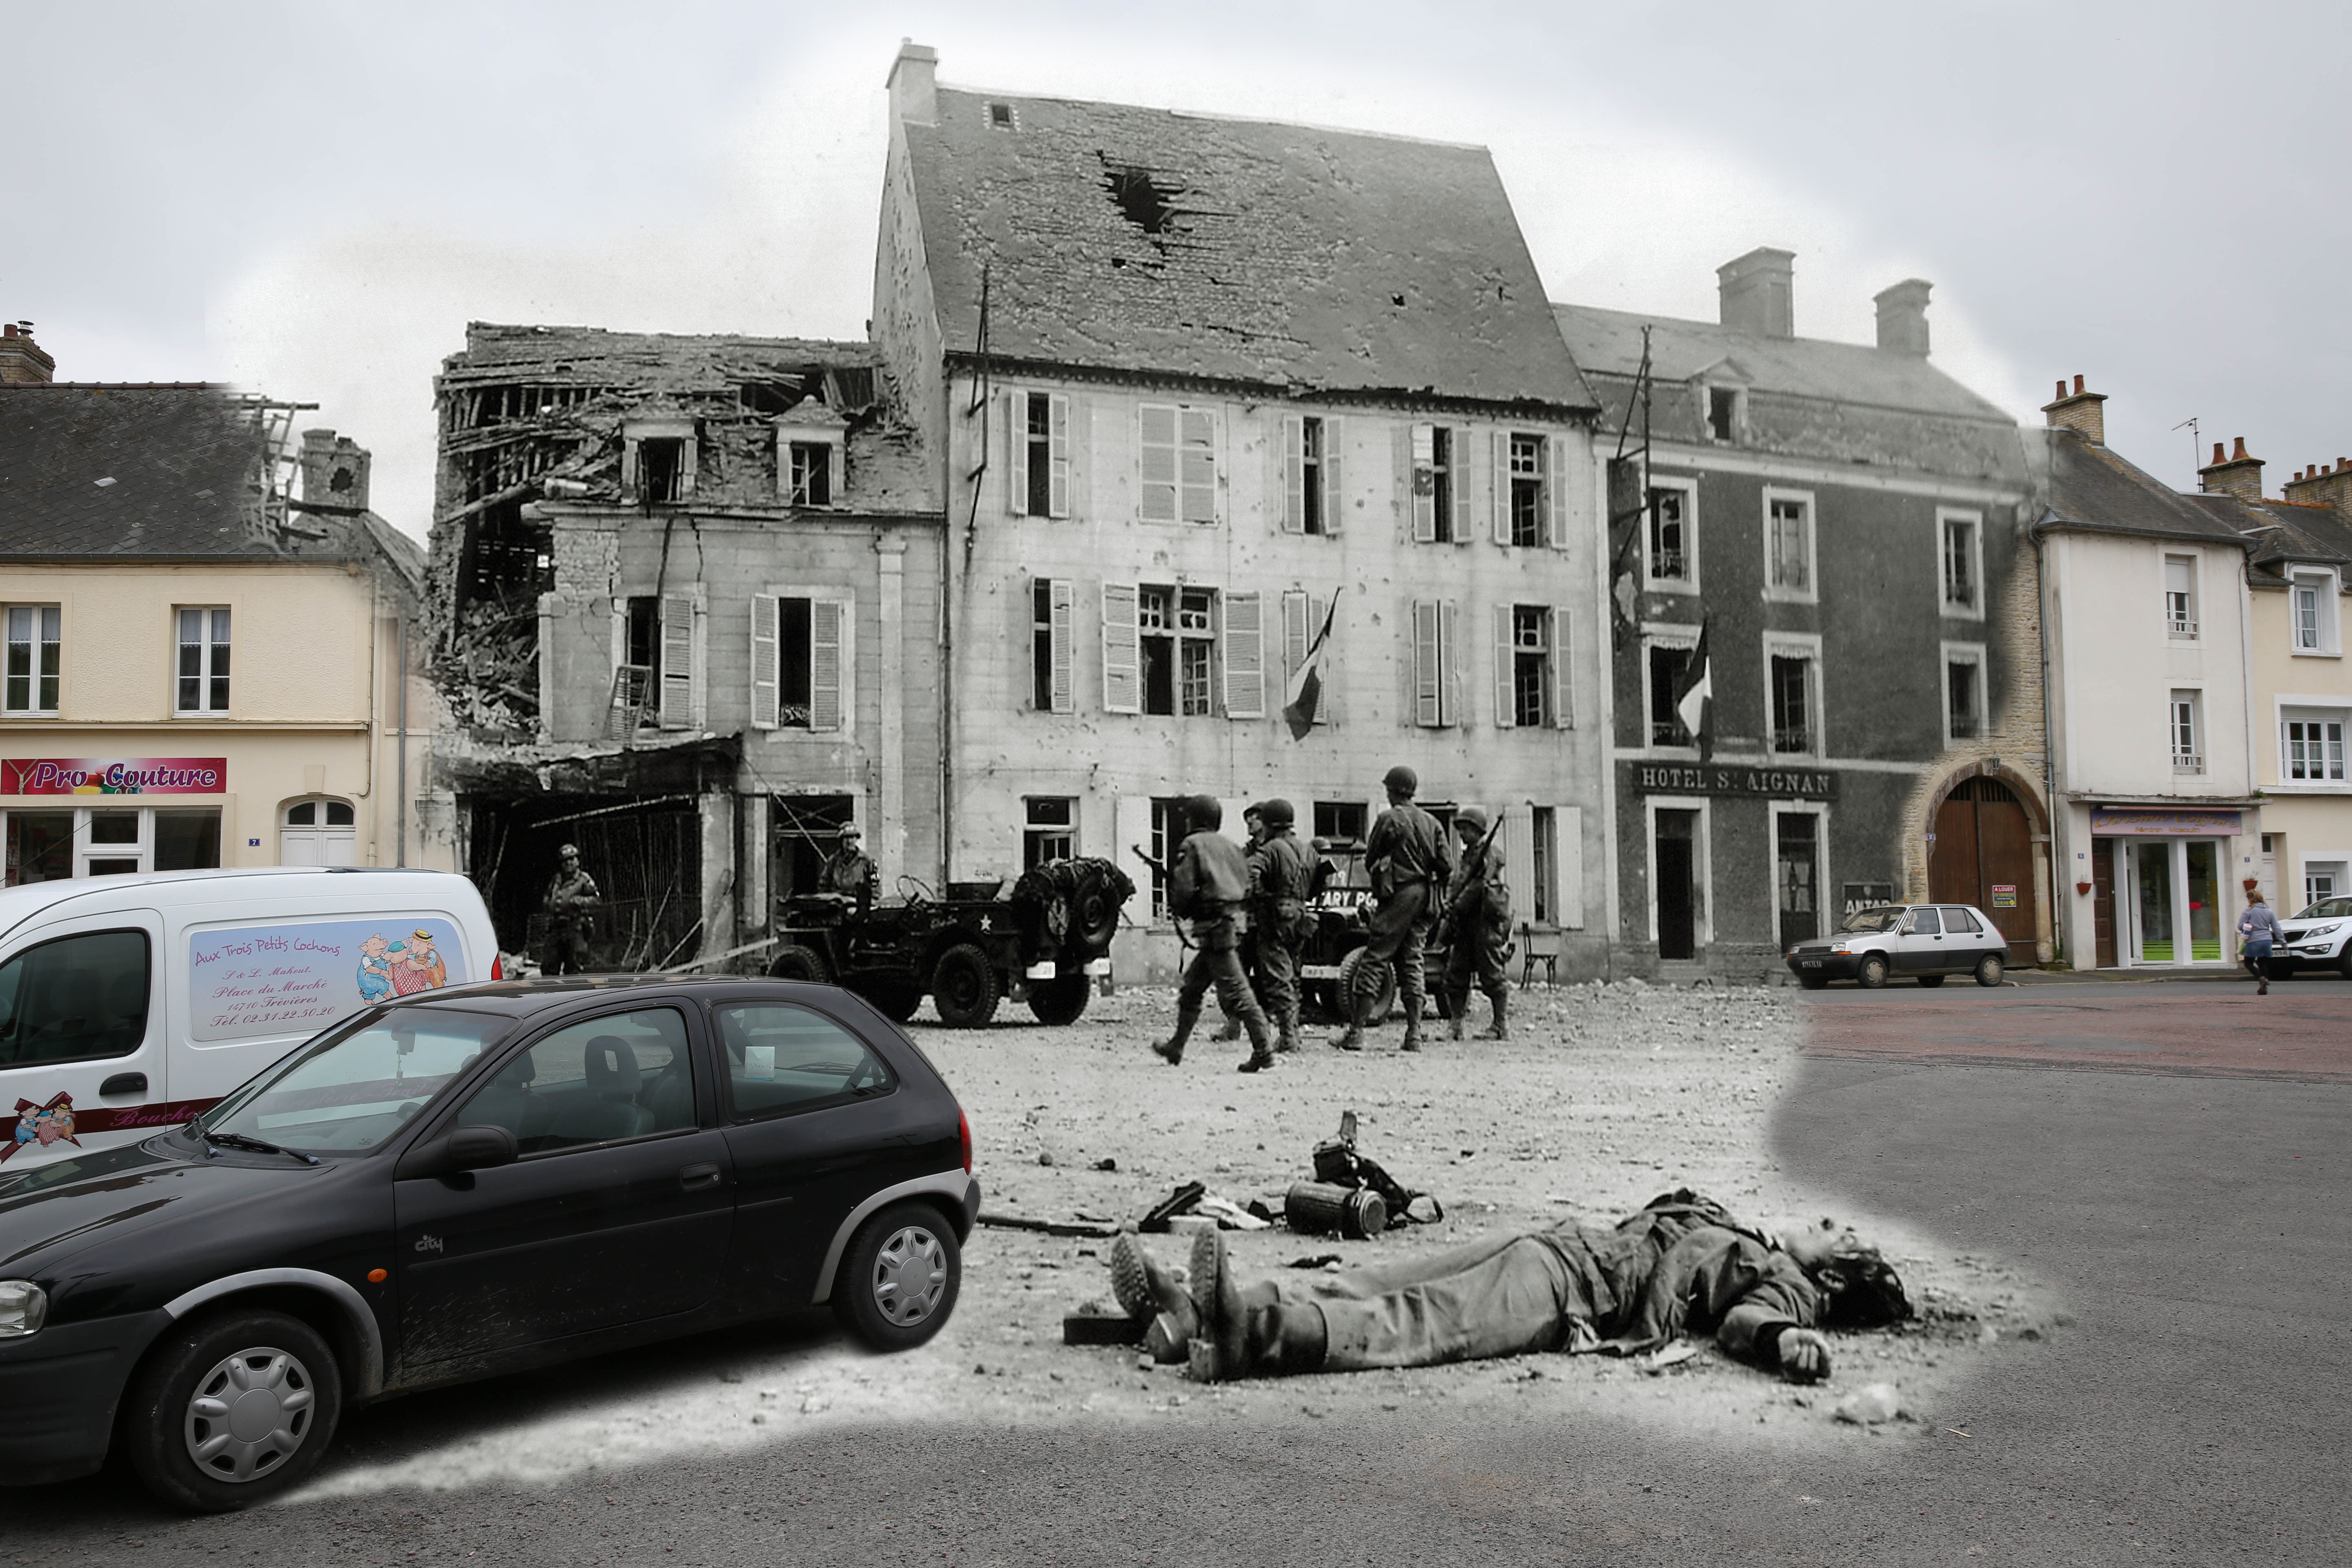 A view of the market square on May 6, 2014 in Trevieres, France. Overlay: The body of a German soldier belonging to the 2nd Infanterie Regiment lies on the Market Square on  June 15, 1944.